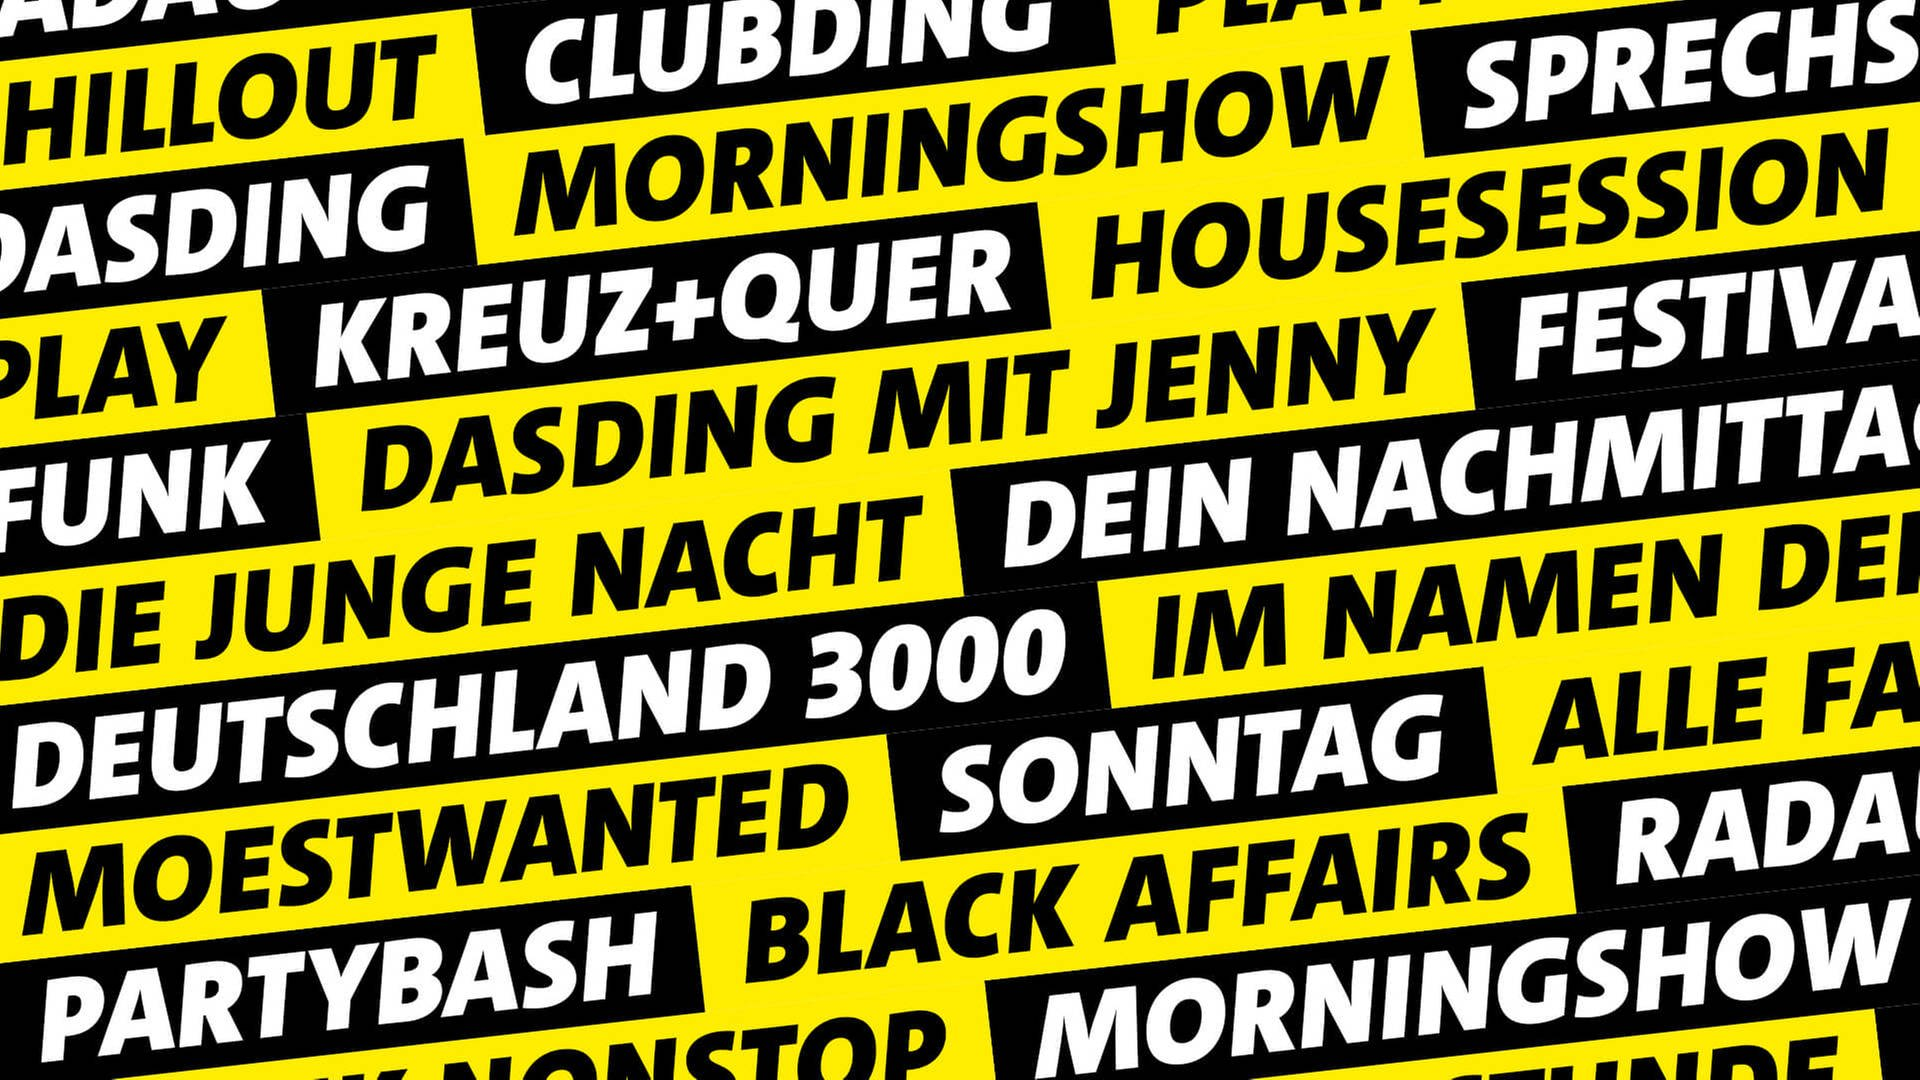 das ding housesession